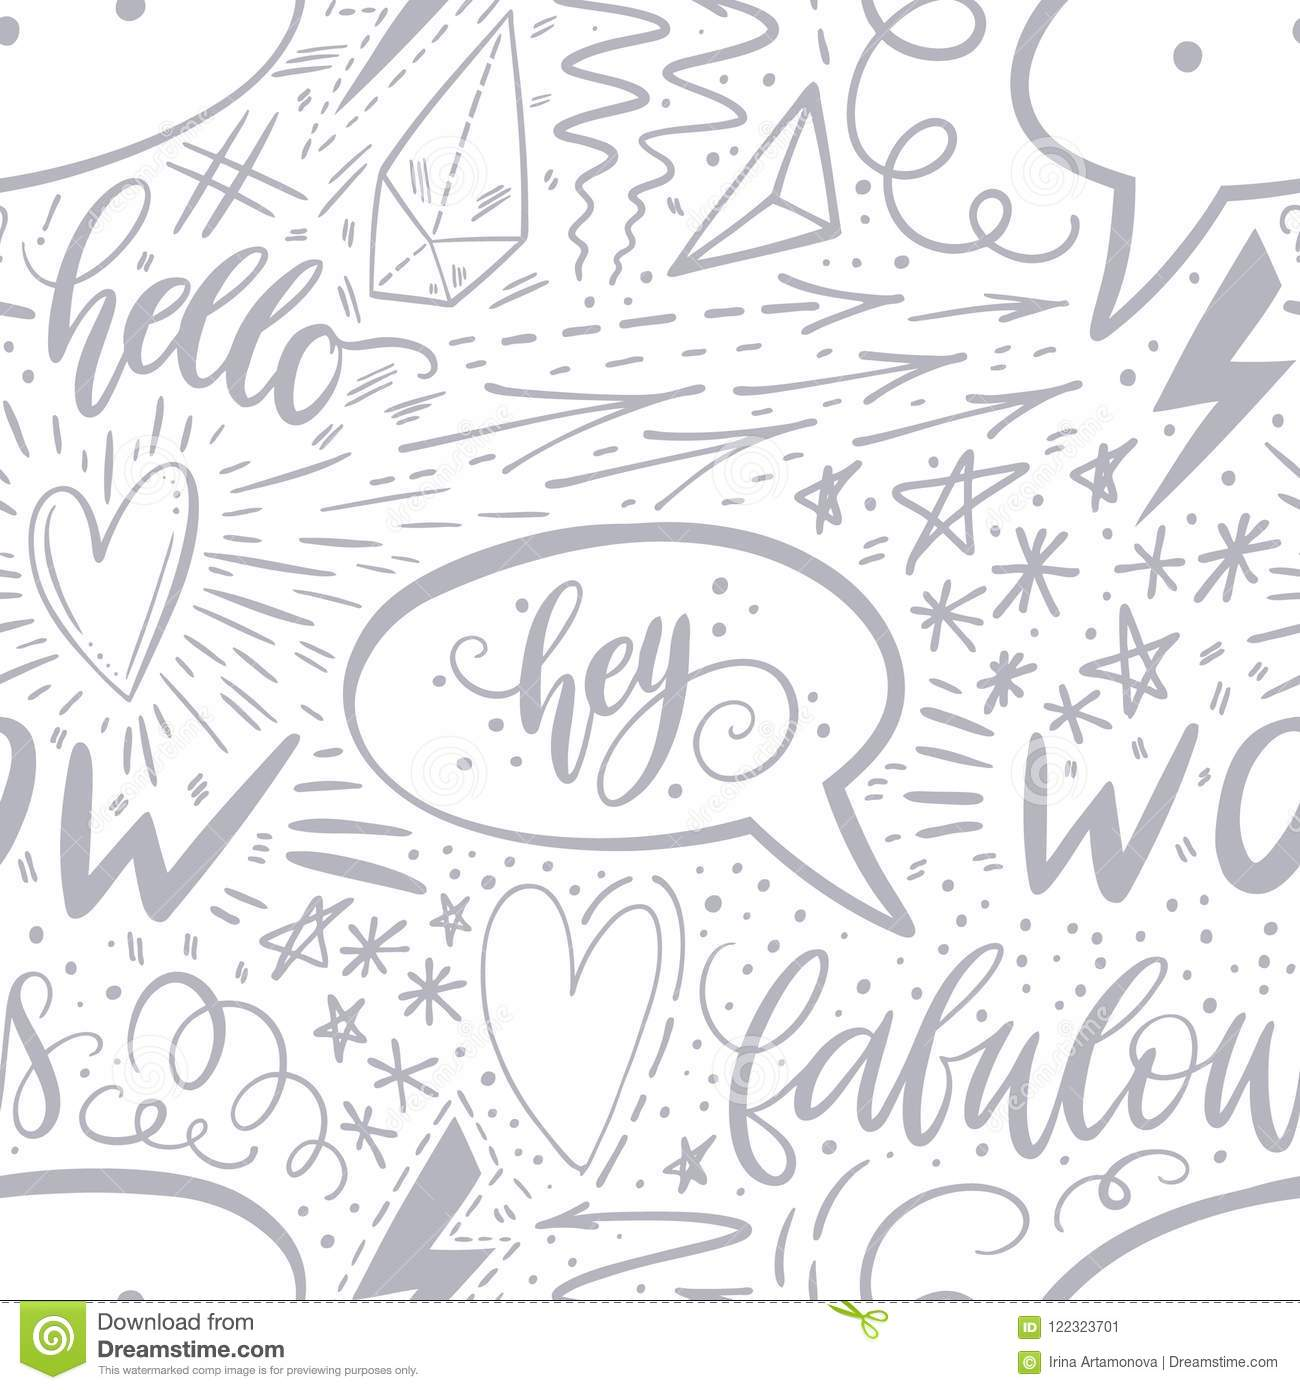 Calligraphy Hand Lettering Seamless Pattern Positive Signs Star Heart Speech Bubbles